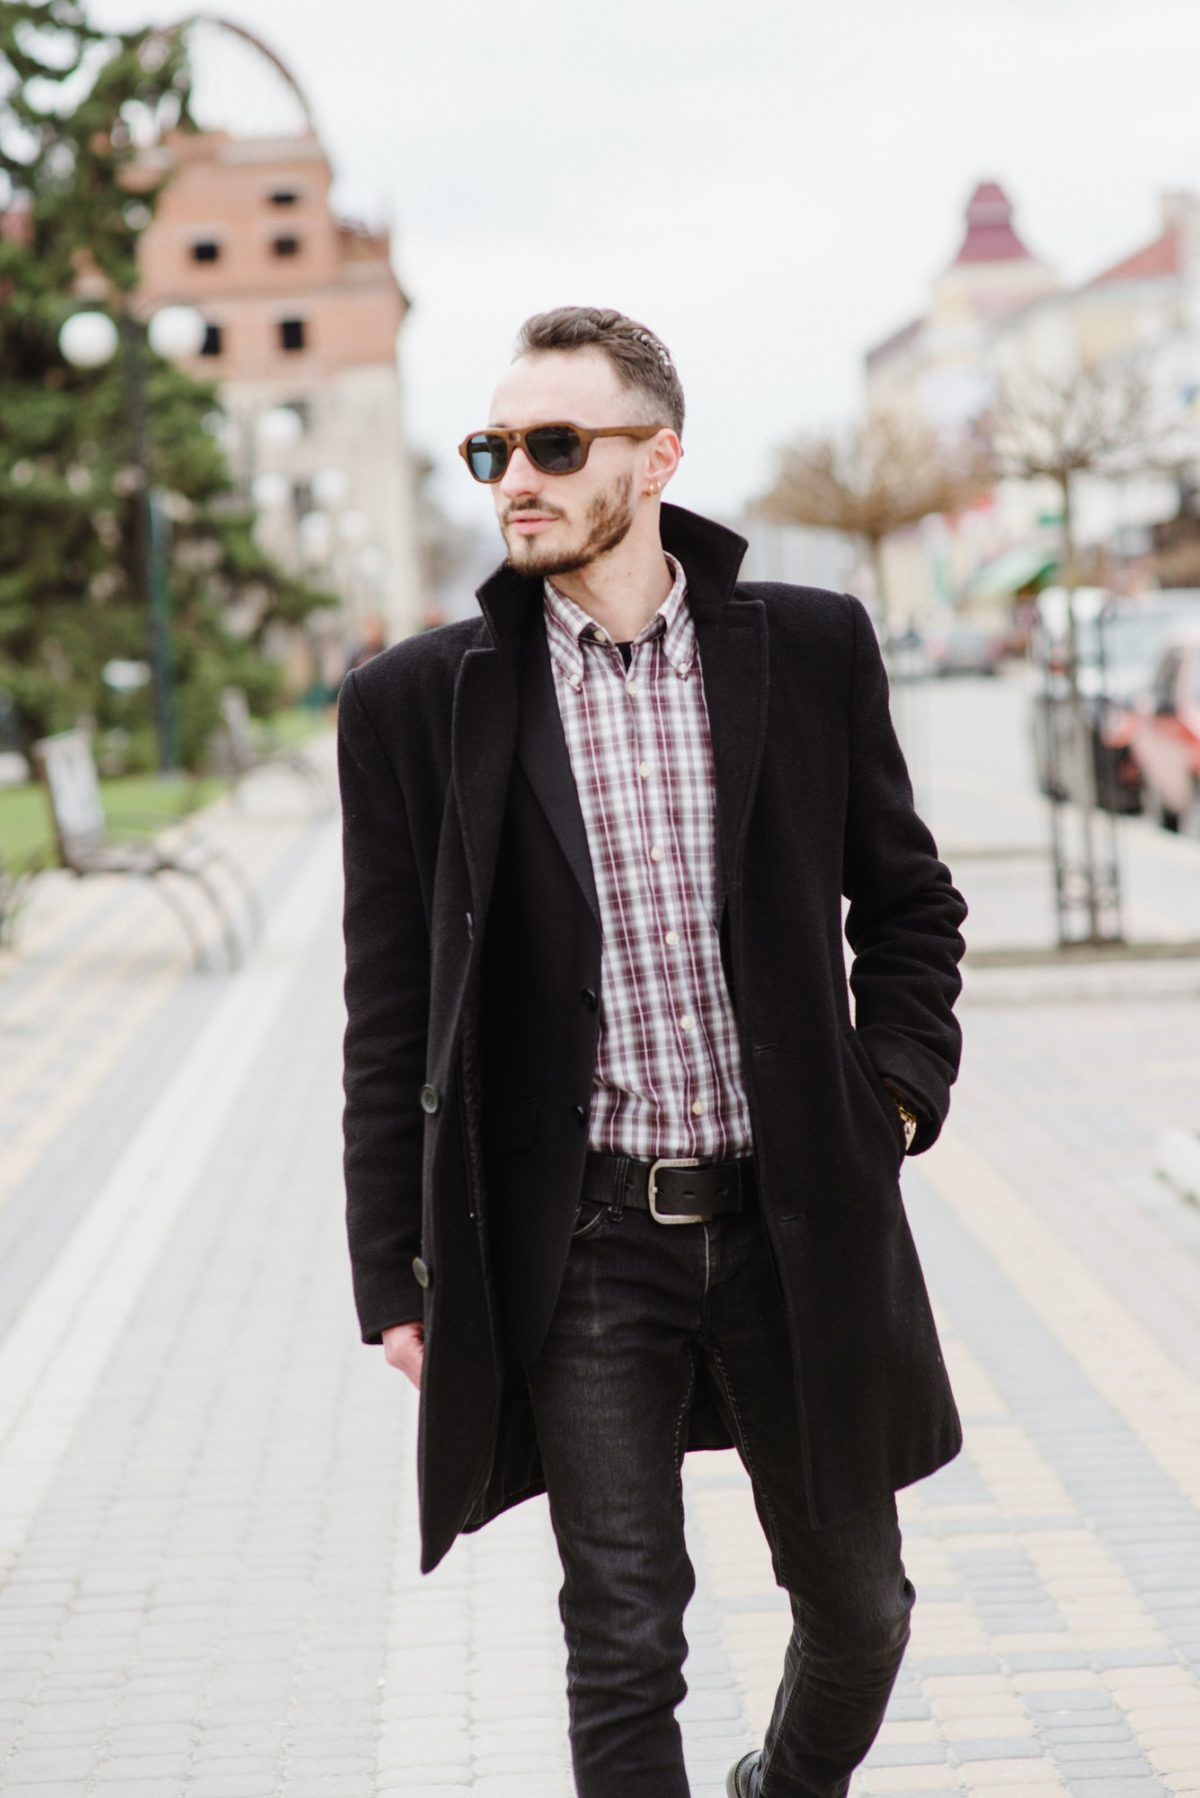 Young stylish man walking in sunglasses